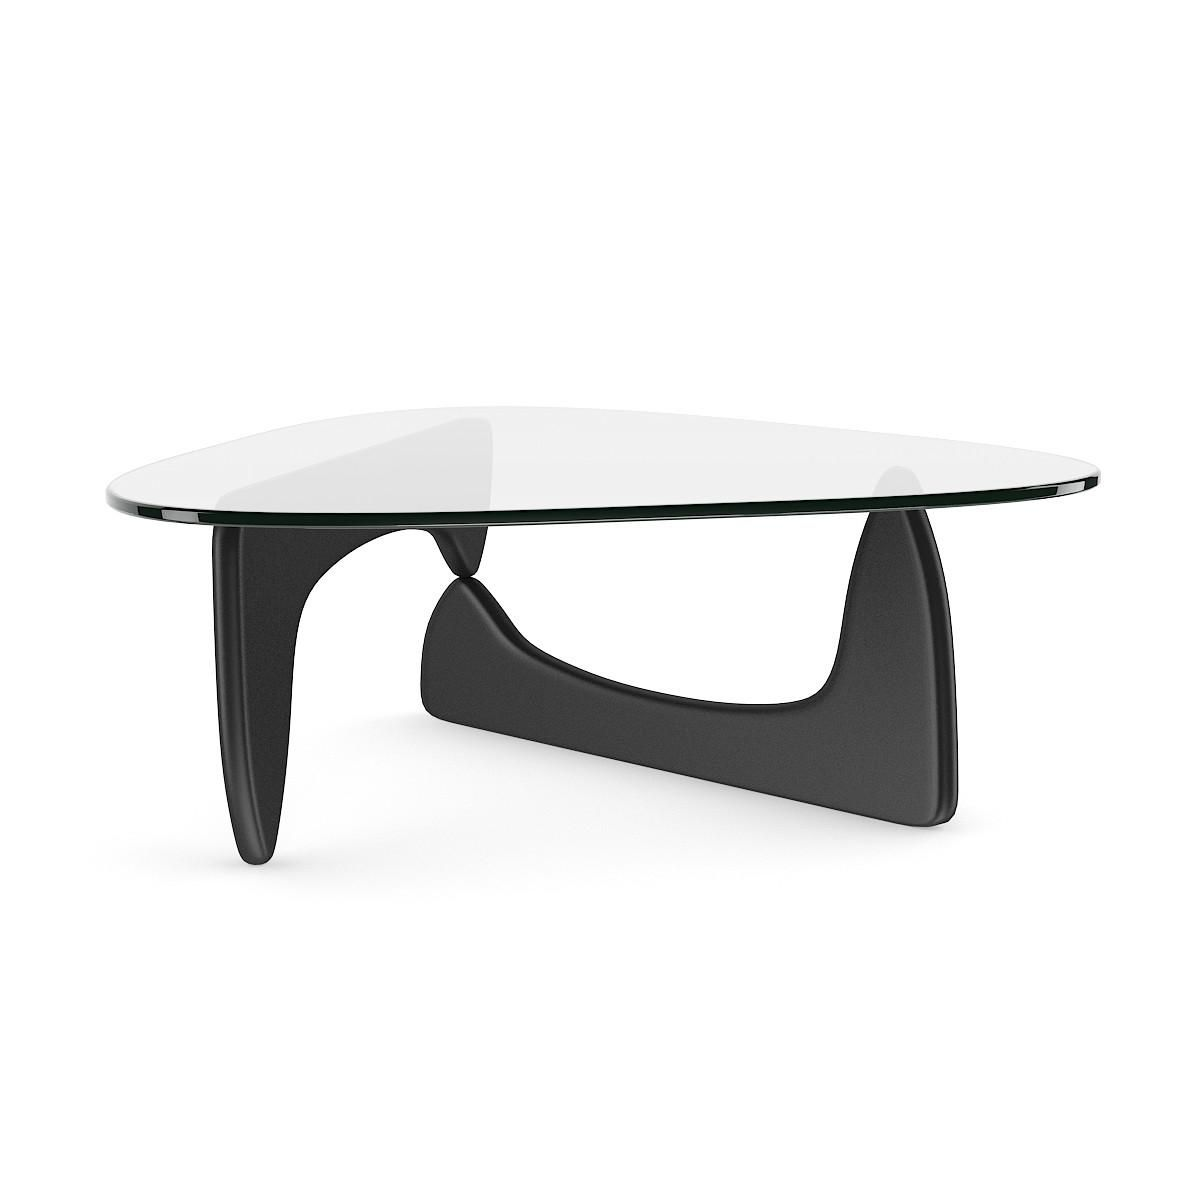 Modern Triangle Coffee Table 3d Model Ad Triangle Modern Coffee Model Triangle Coffee Table Coffee Table 3d Model Coffee Table 3d [ 1200 x 1200 Pixel ]